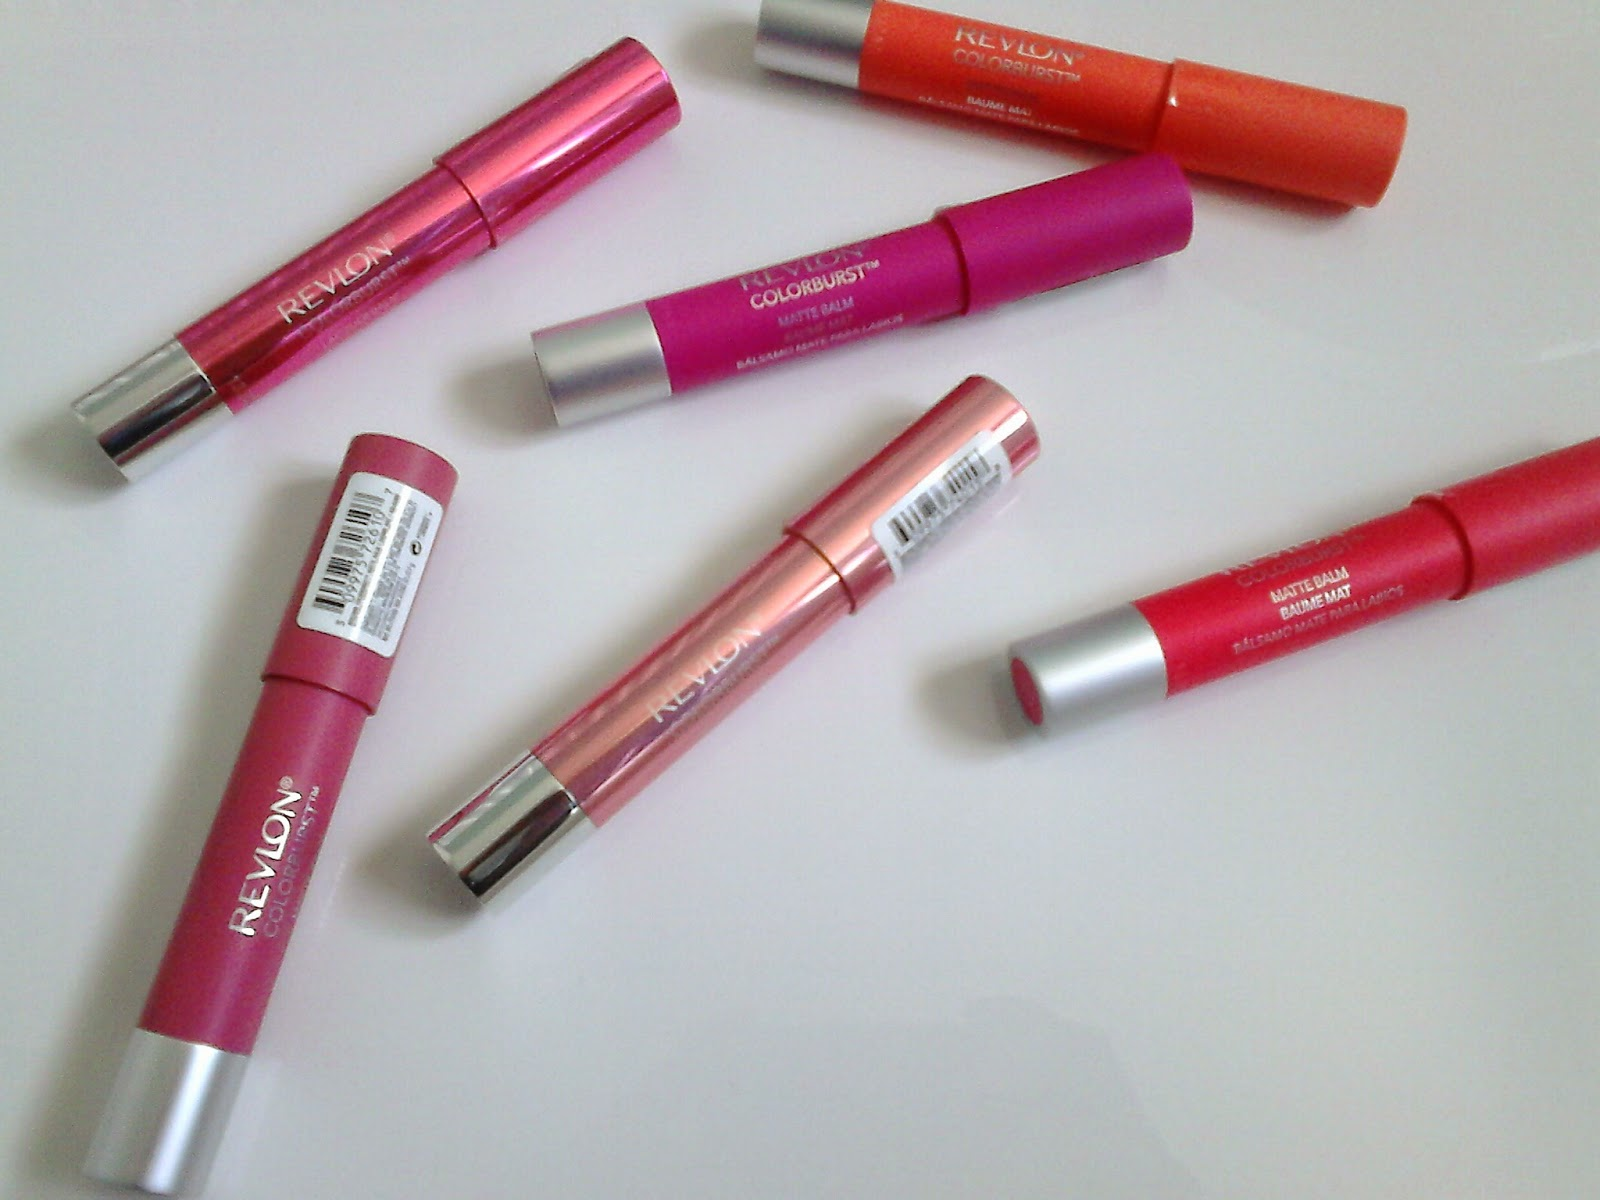 Revlon Colorburst Matte and Lacquer Balms